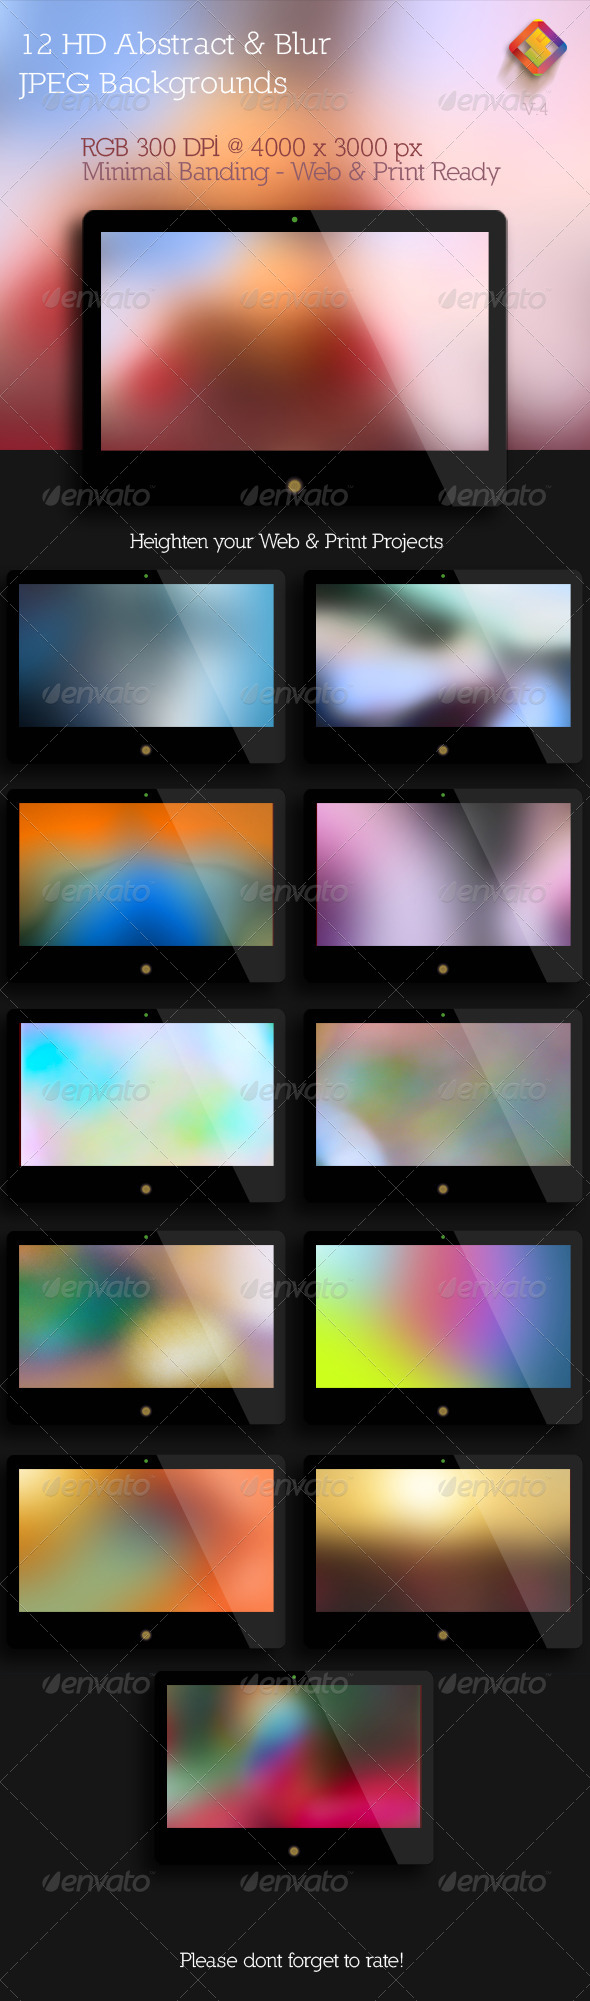 Abstract and Blur Backgrounds  V.4 - Abstract Backgrounds